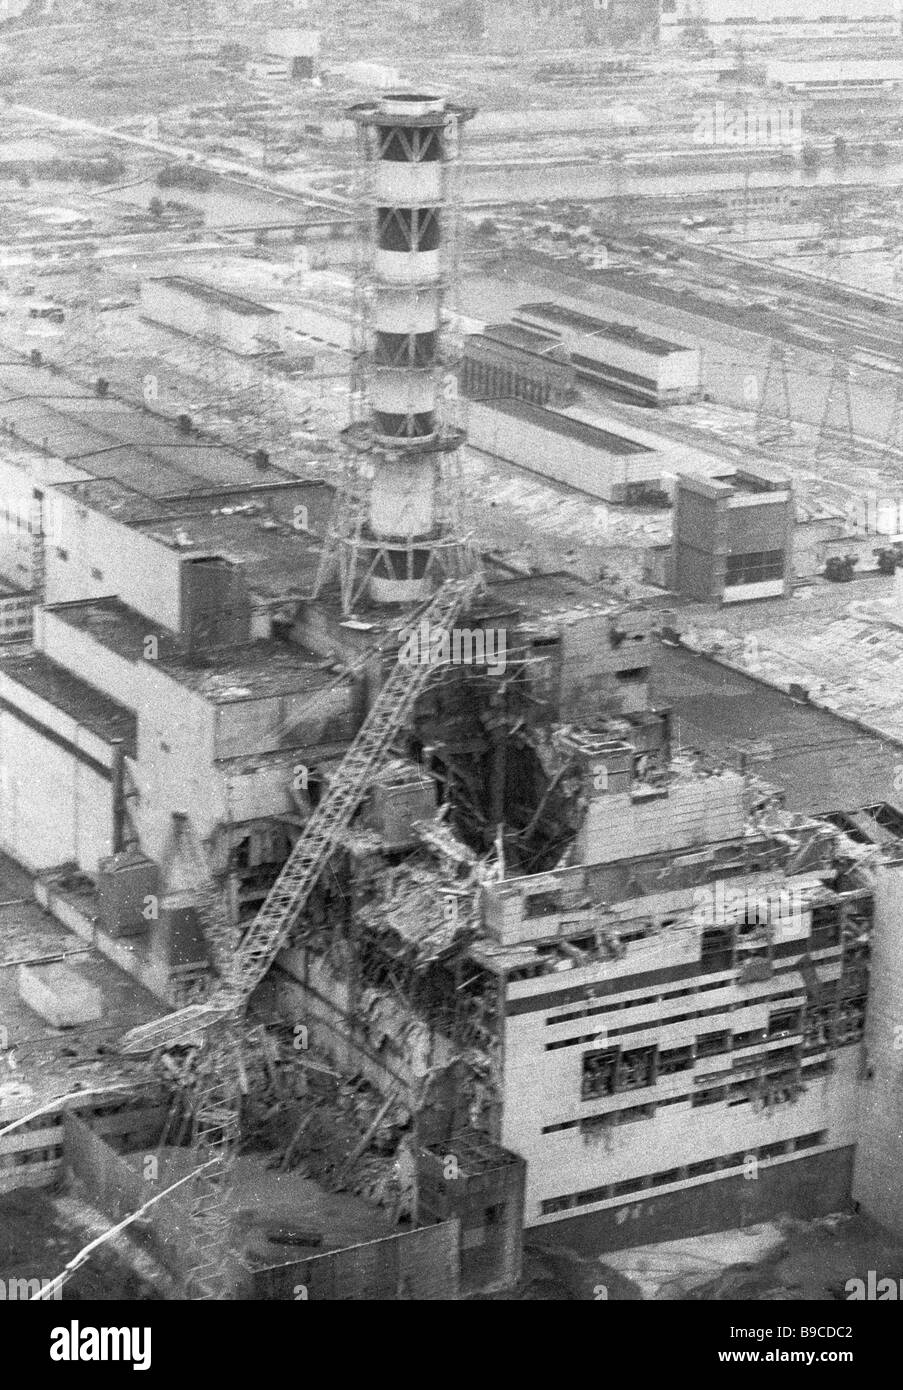 Chernobyl s fourth nuclear reactor destroyed 4 months after the disaster - Stock Image